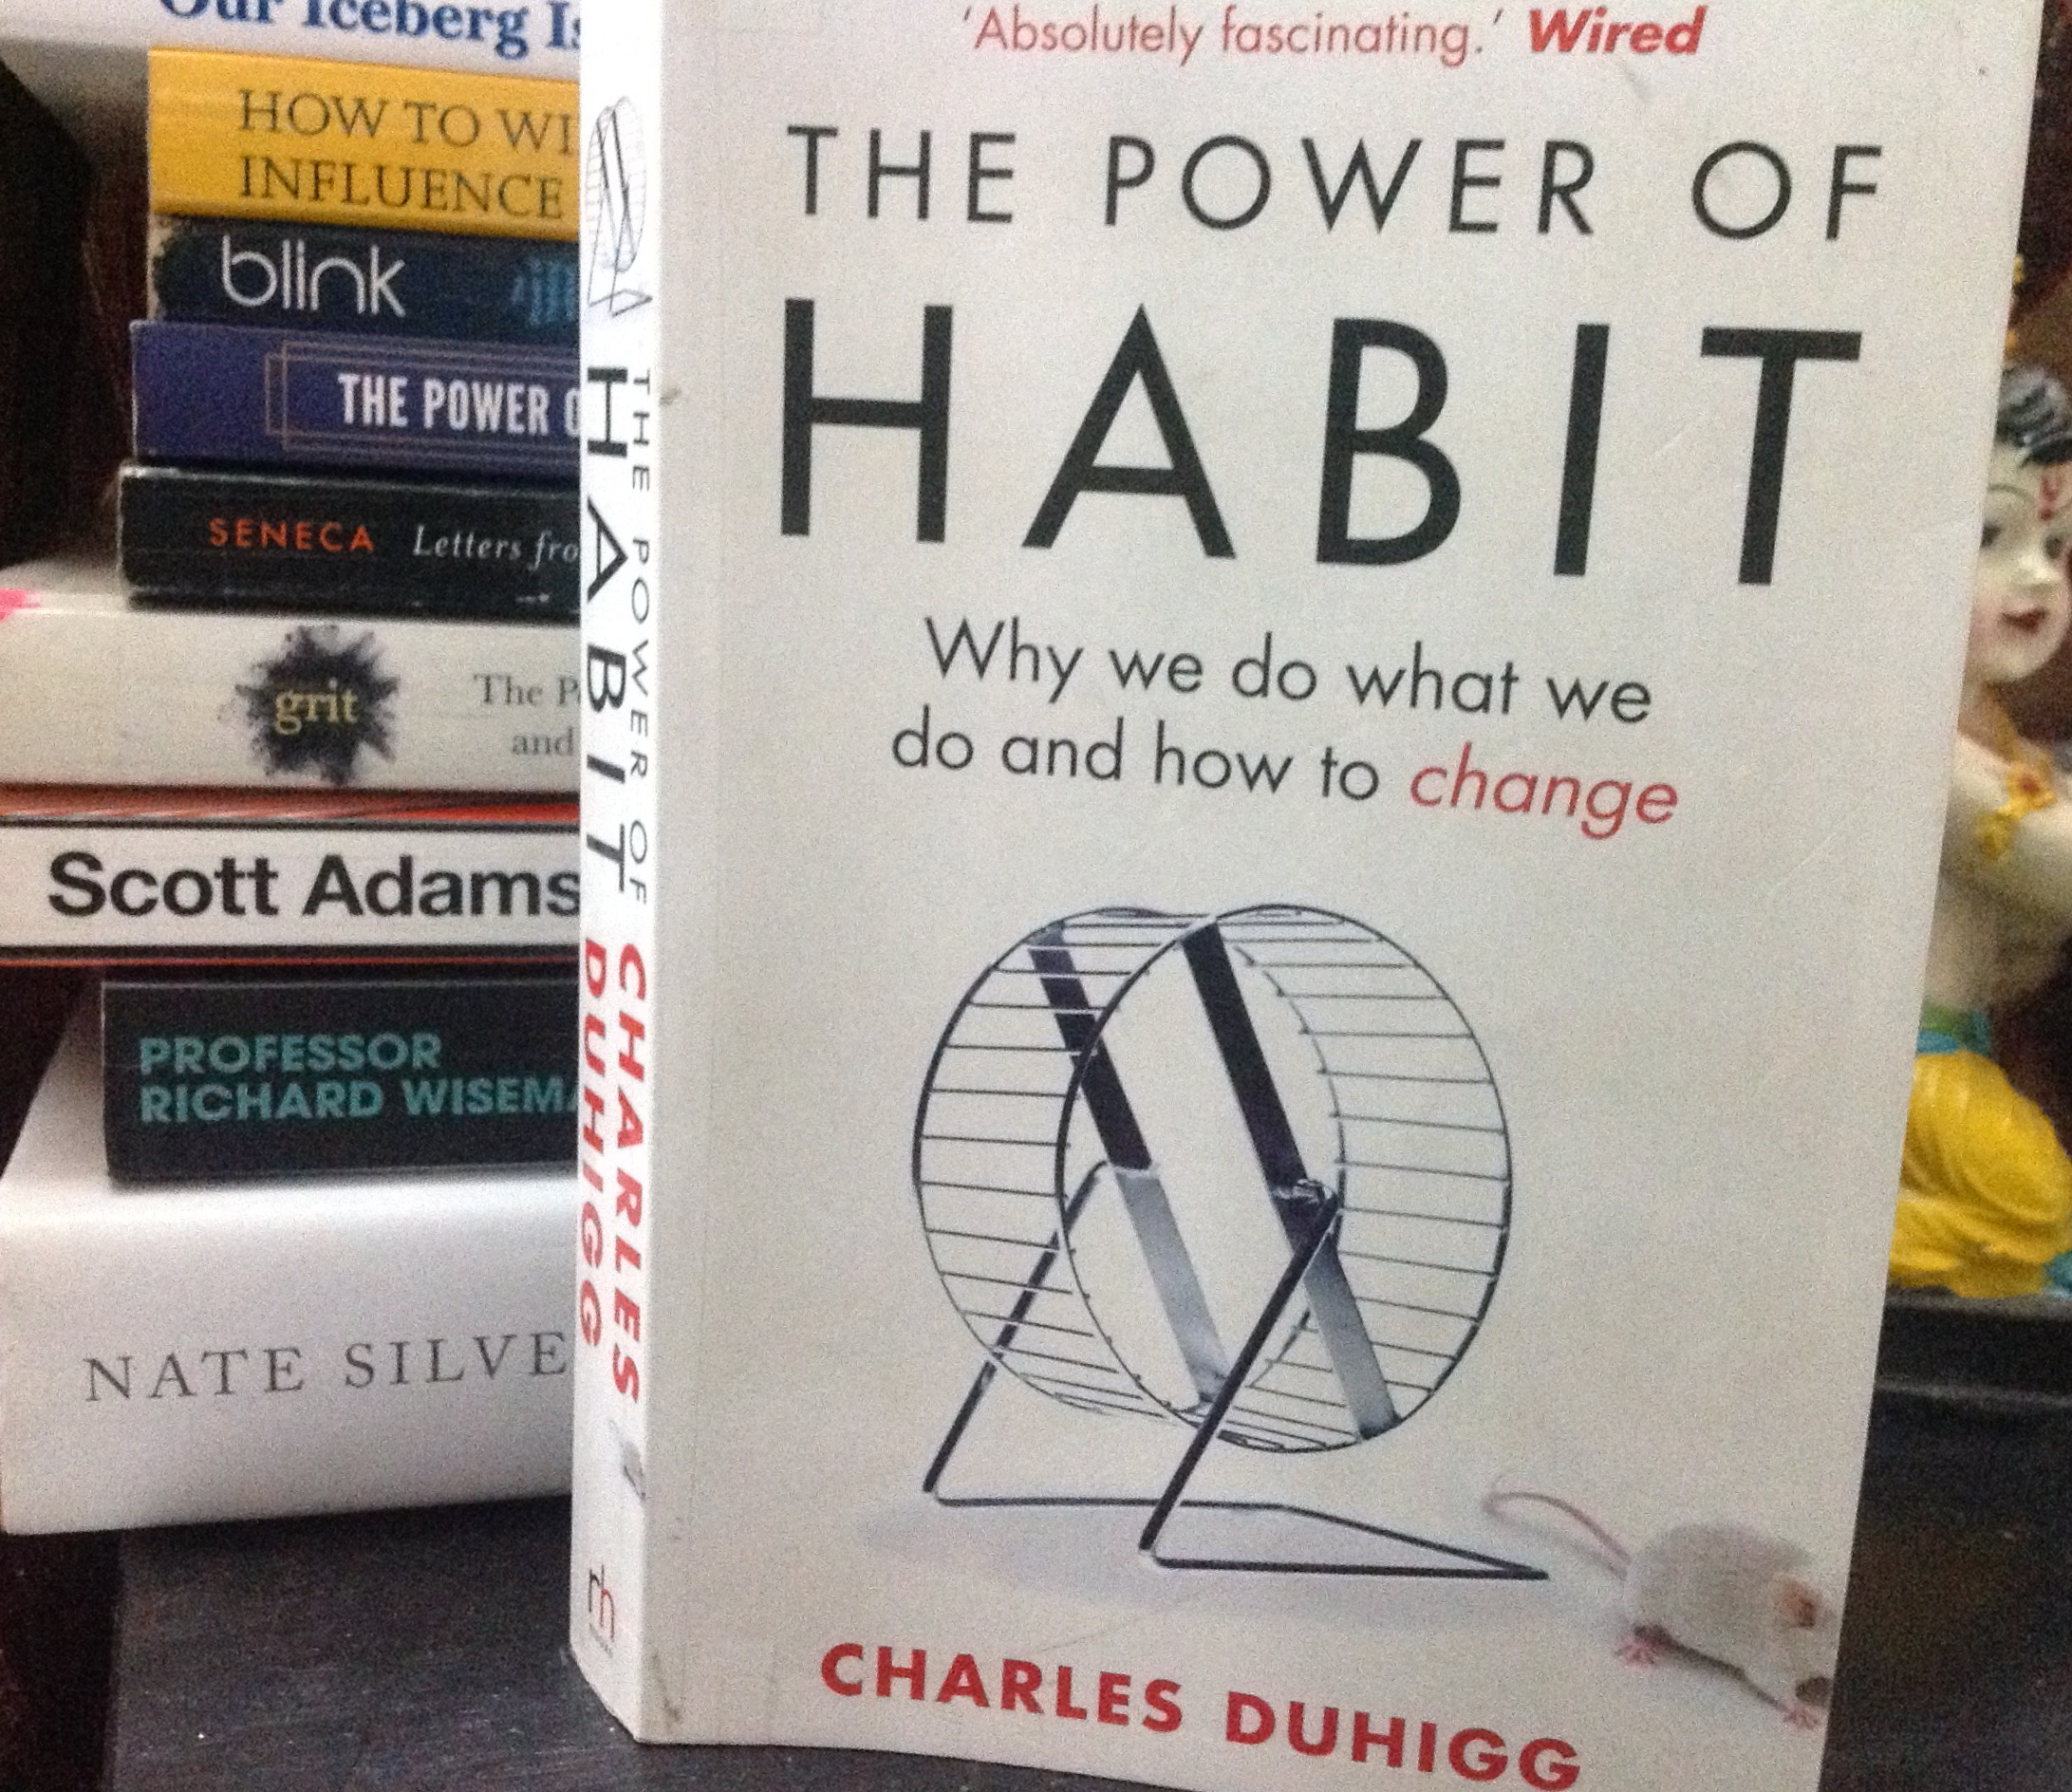 'The Power of Habit' by Charles Duhigg - Part II